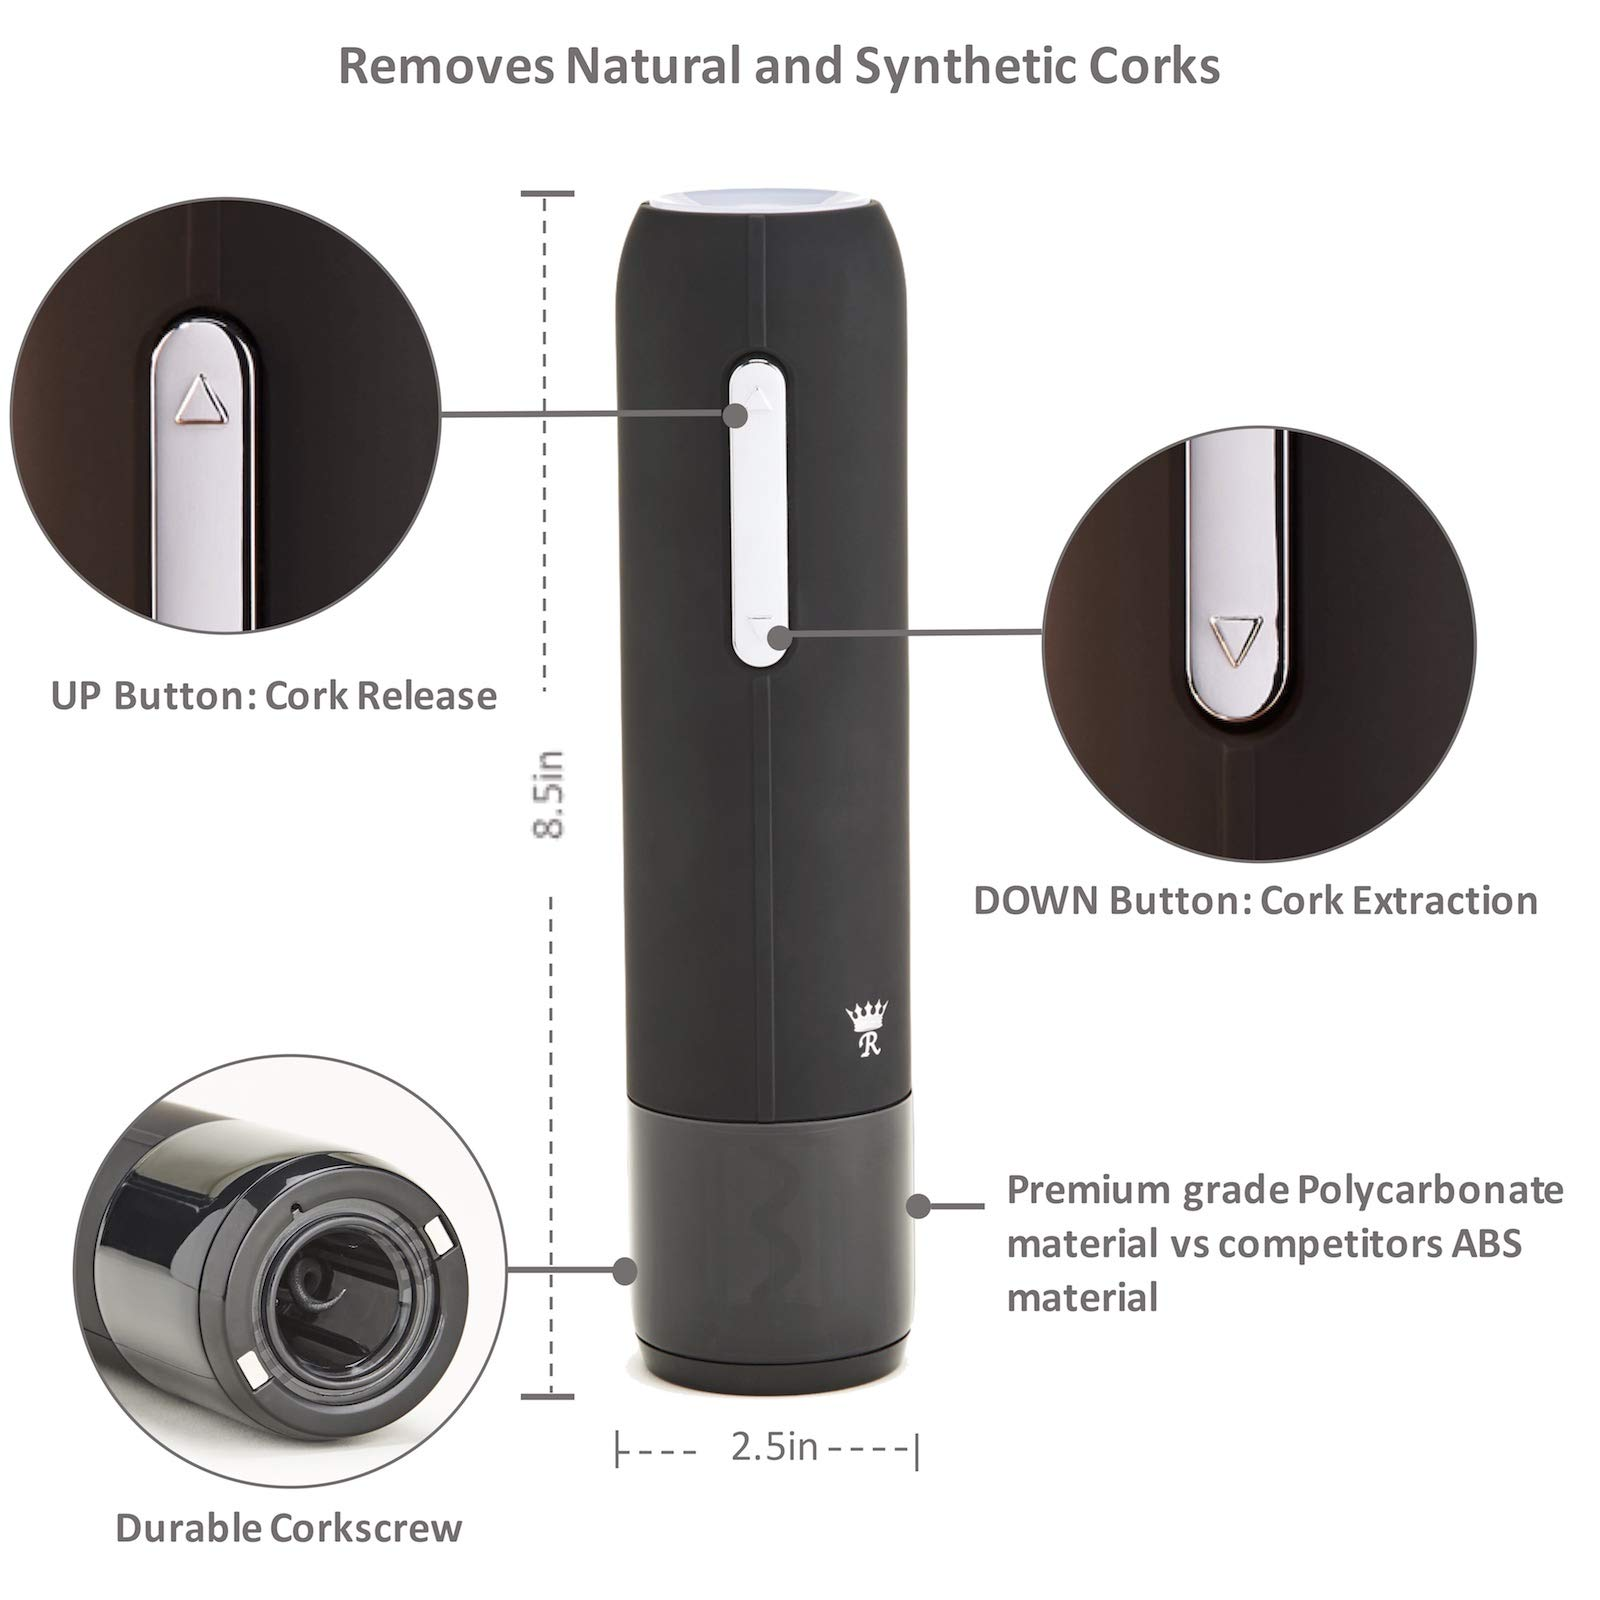 Royaluxe - Deluxe 7 Piece Electric Wine Opener Gift Set | Rechargeable Wine Bottle Opener with Aerator, Premium Wine Preservation Vacuum System, 2 Bottle Stoppers, Foil Cutter & Charging Base | Elegant Matte Black Finish with Stainless Steel Accents by Royaluxe (Image #3)